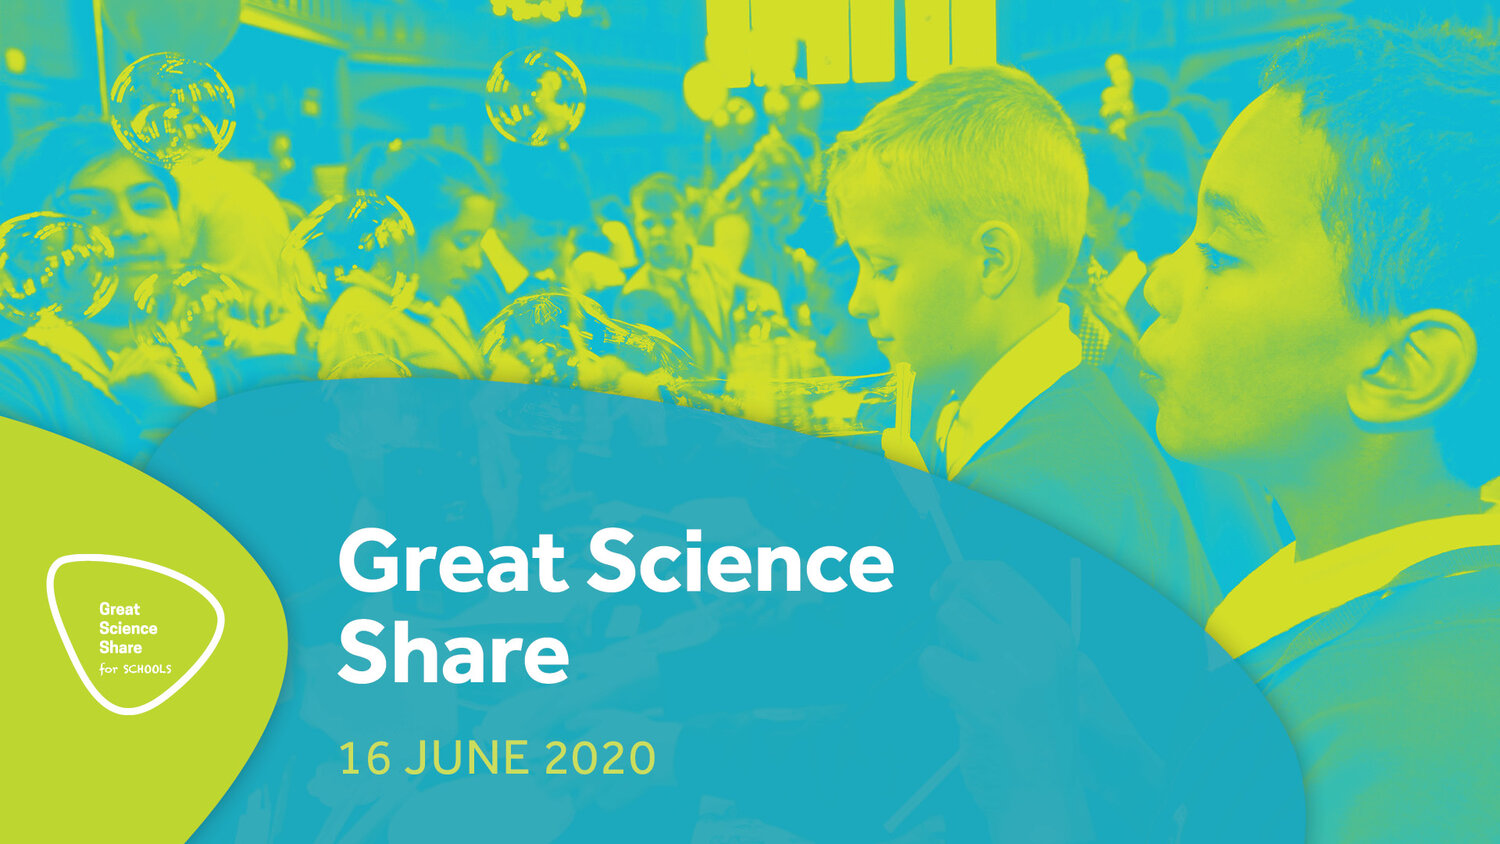 Great Science Share Day — The Great Science Share for Schools